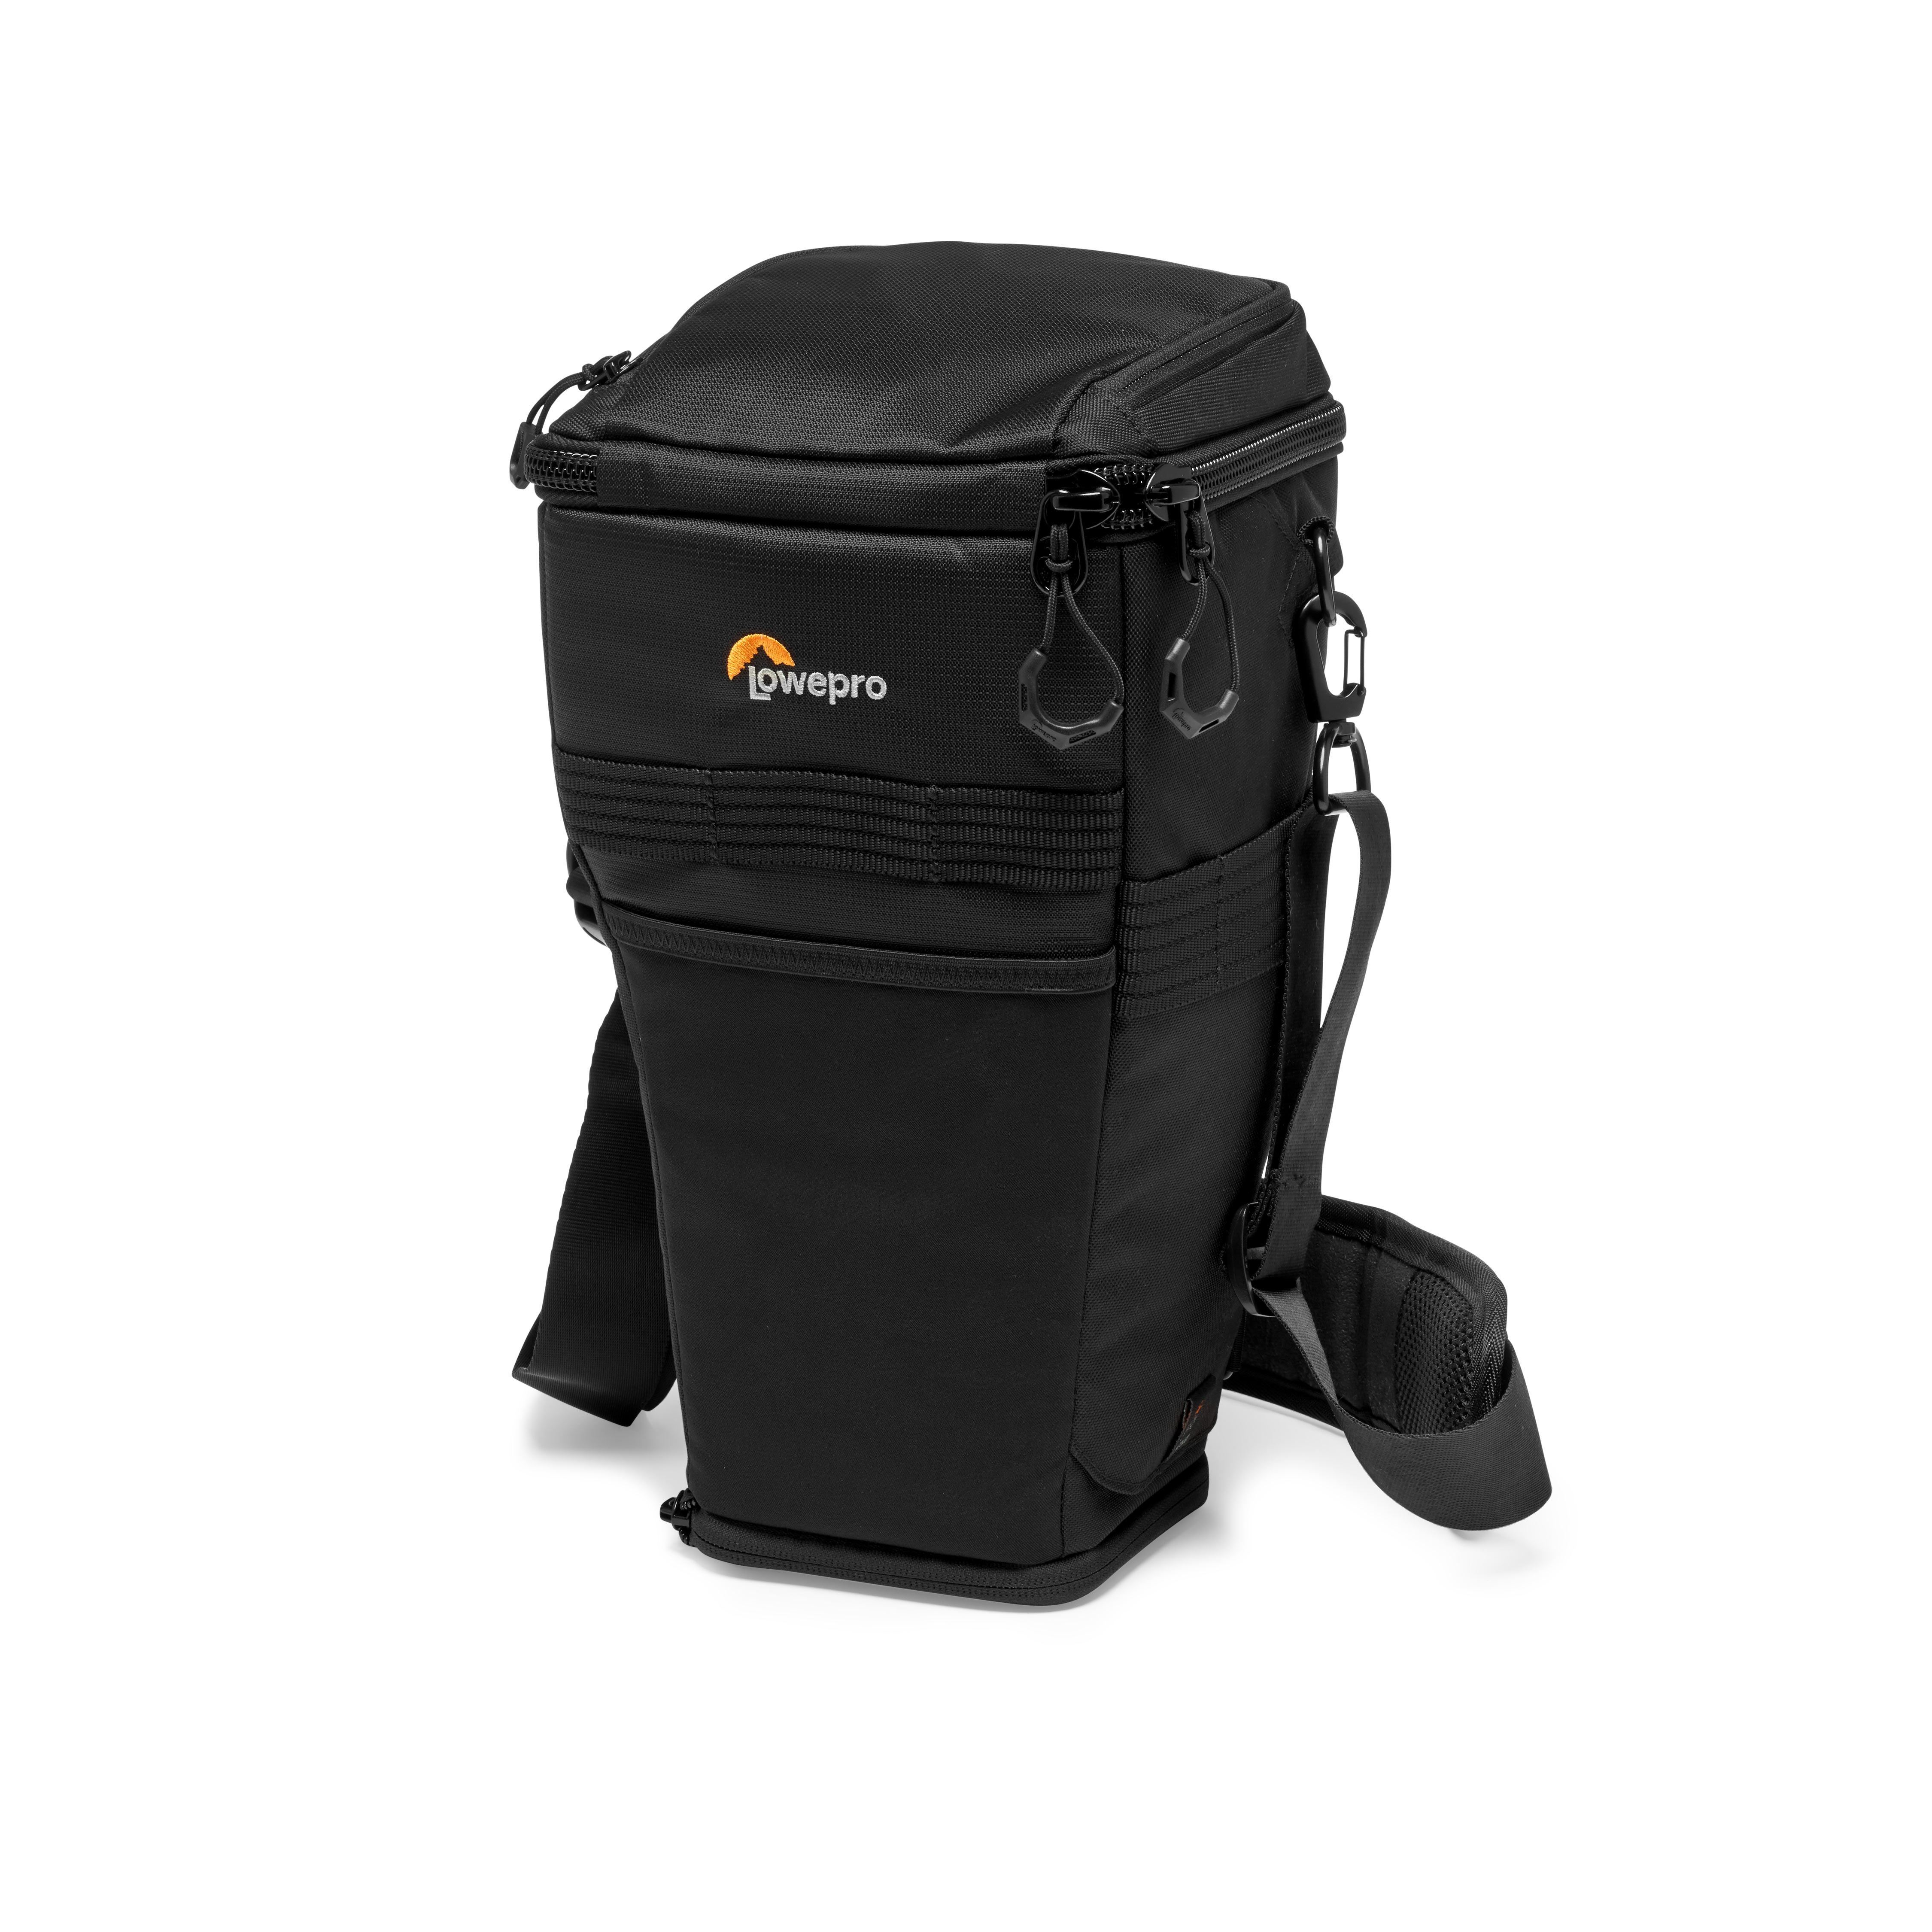 Image of Lowepro ProTactic TLZ 75 AW Toploader